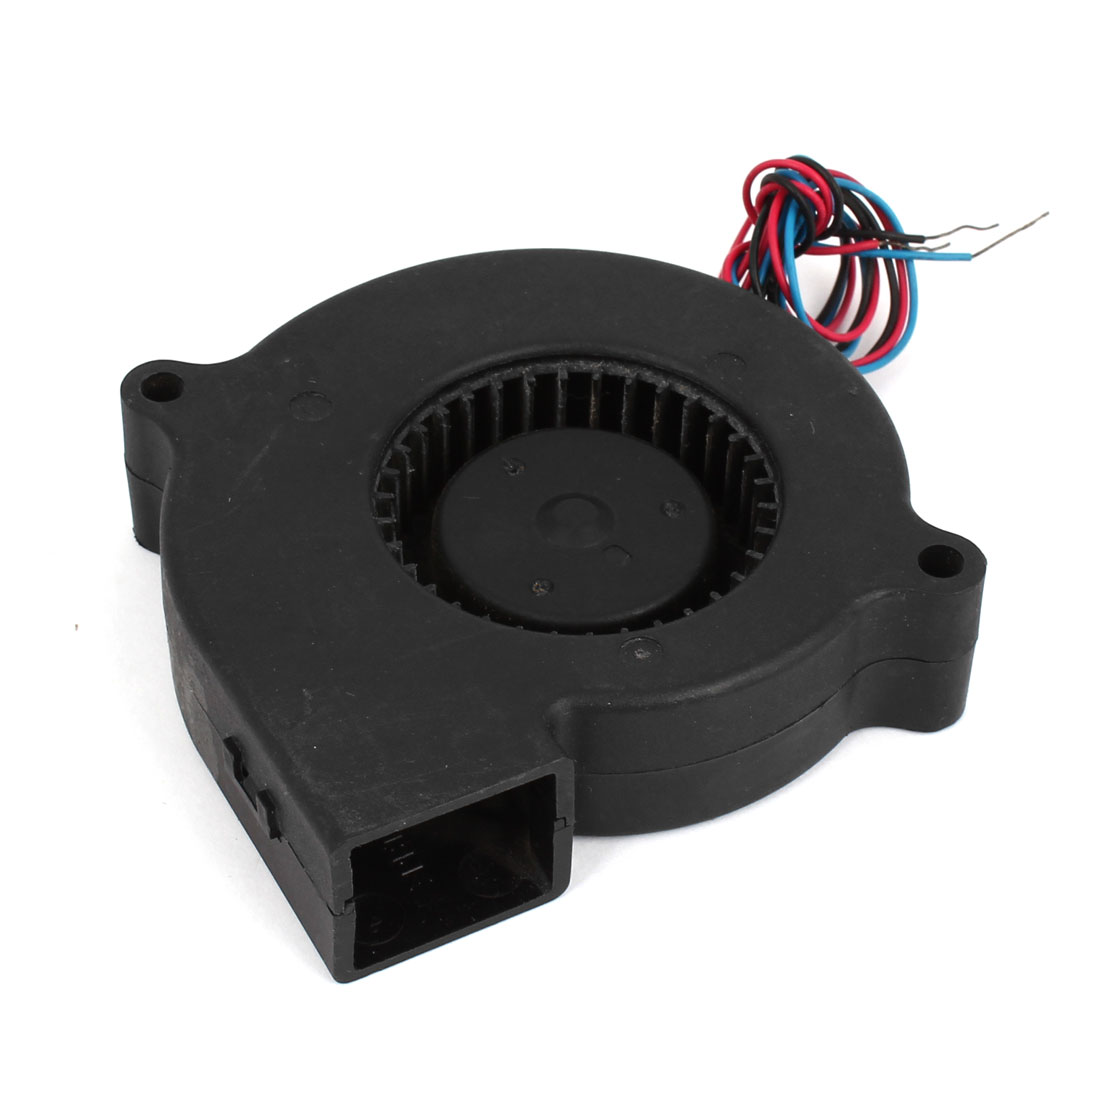 Notebook PC Wired CPU Cooler Cooling Blower Fan Black DC 24V